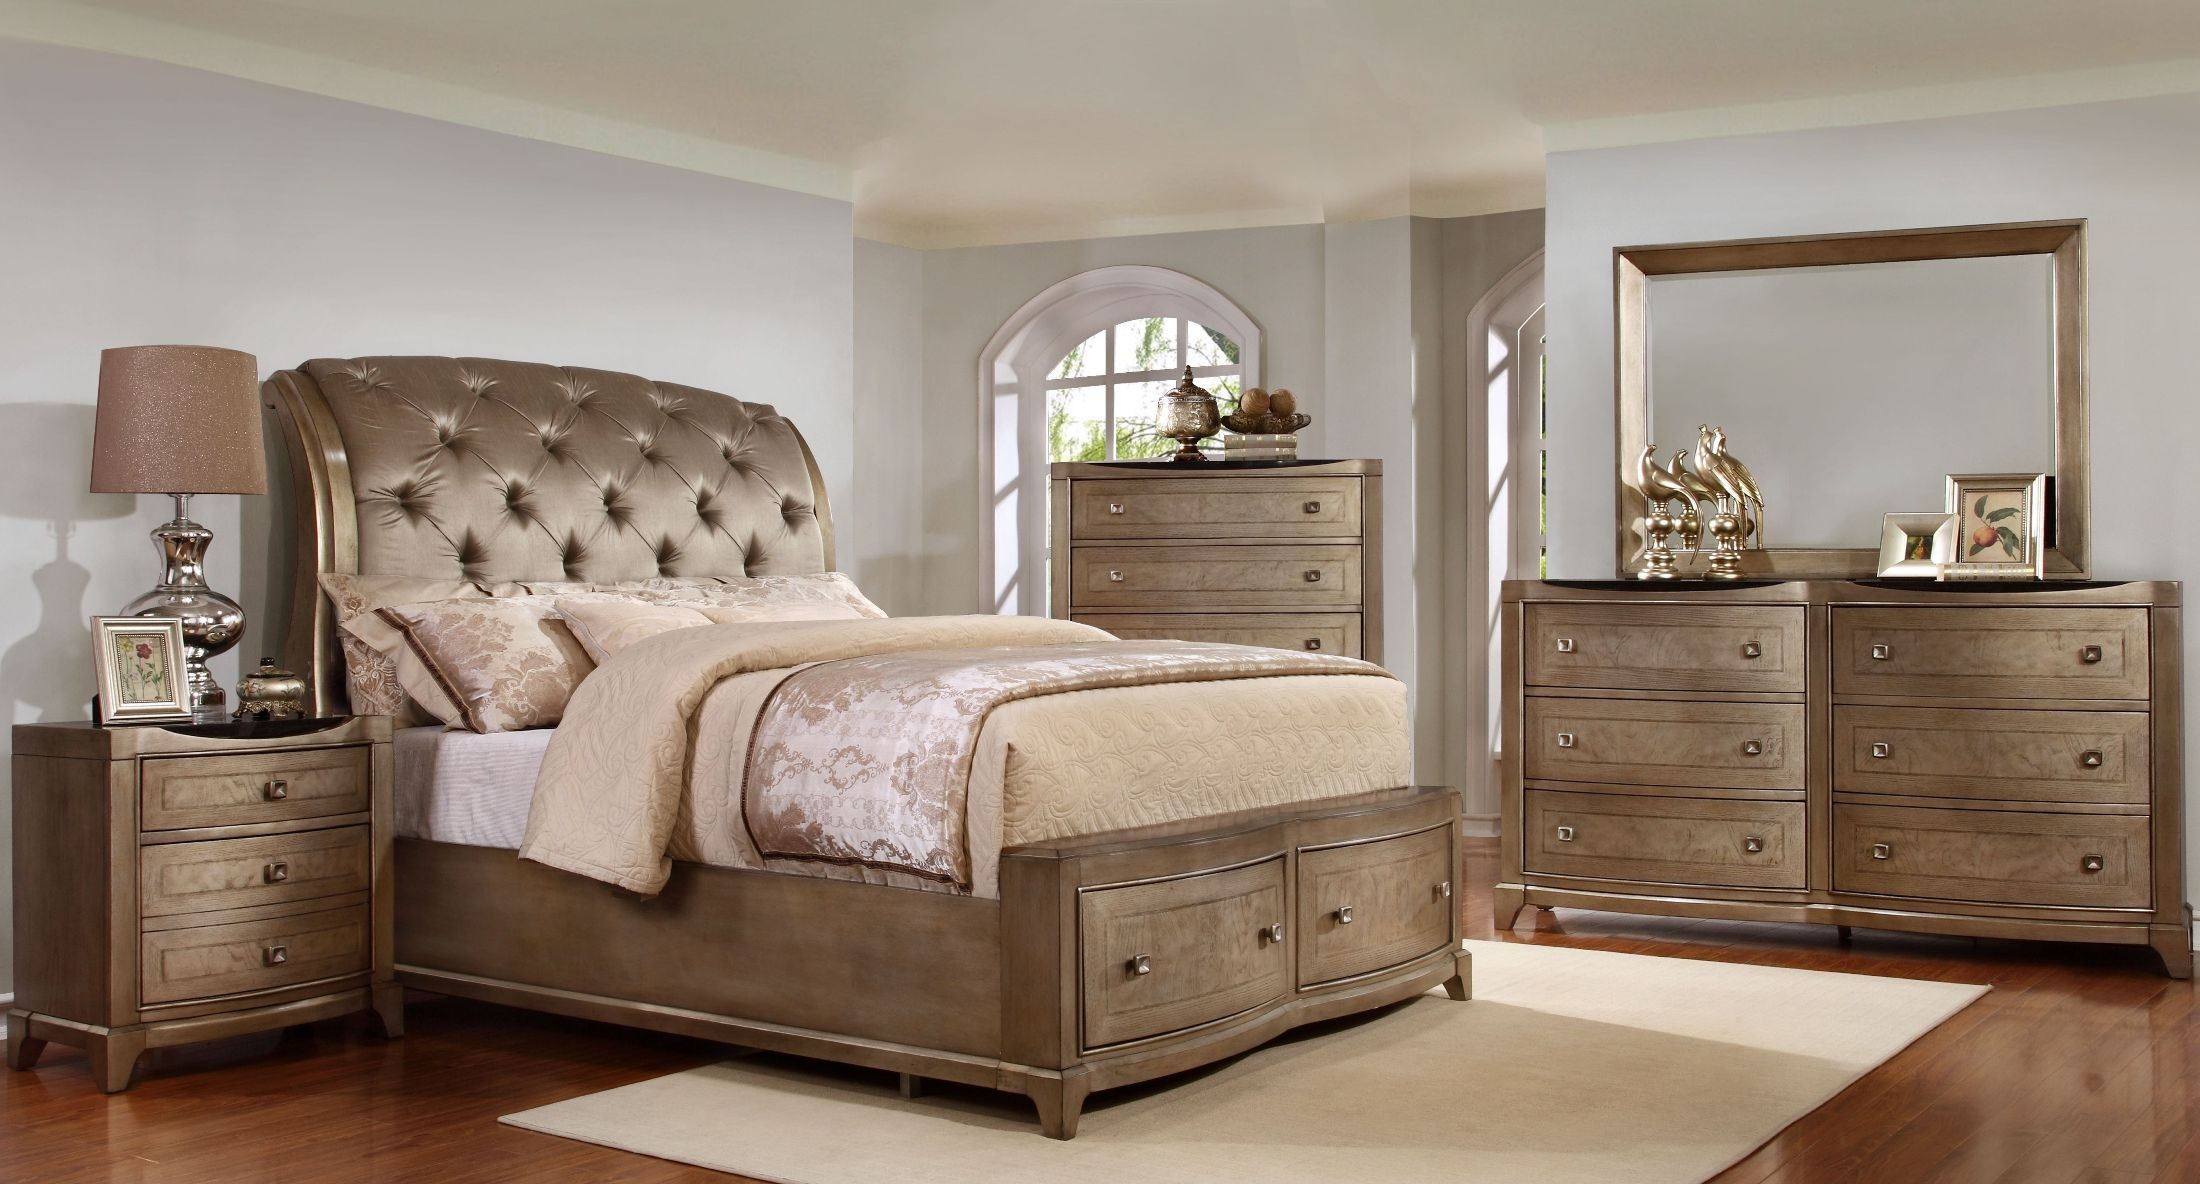 Perfect 2255840 Uptown Translucent Champagne Dresser From Avalon Furniture. Avalon  Bedroom Set.